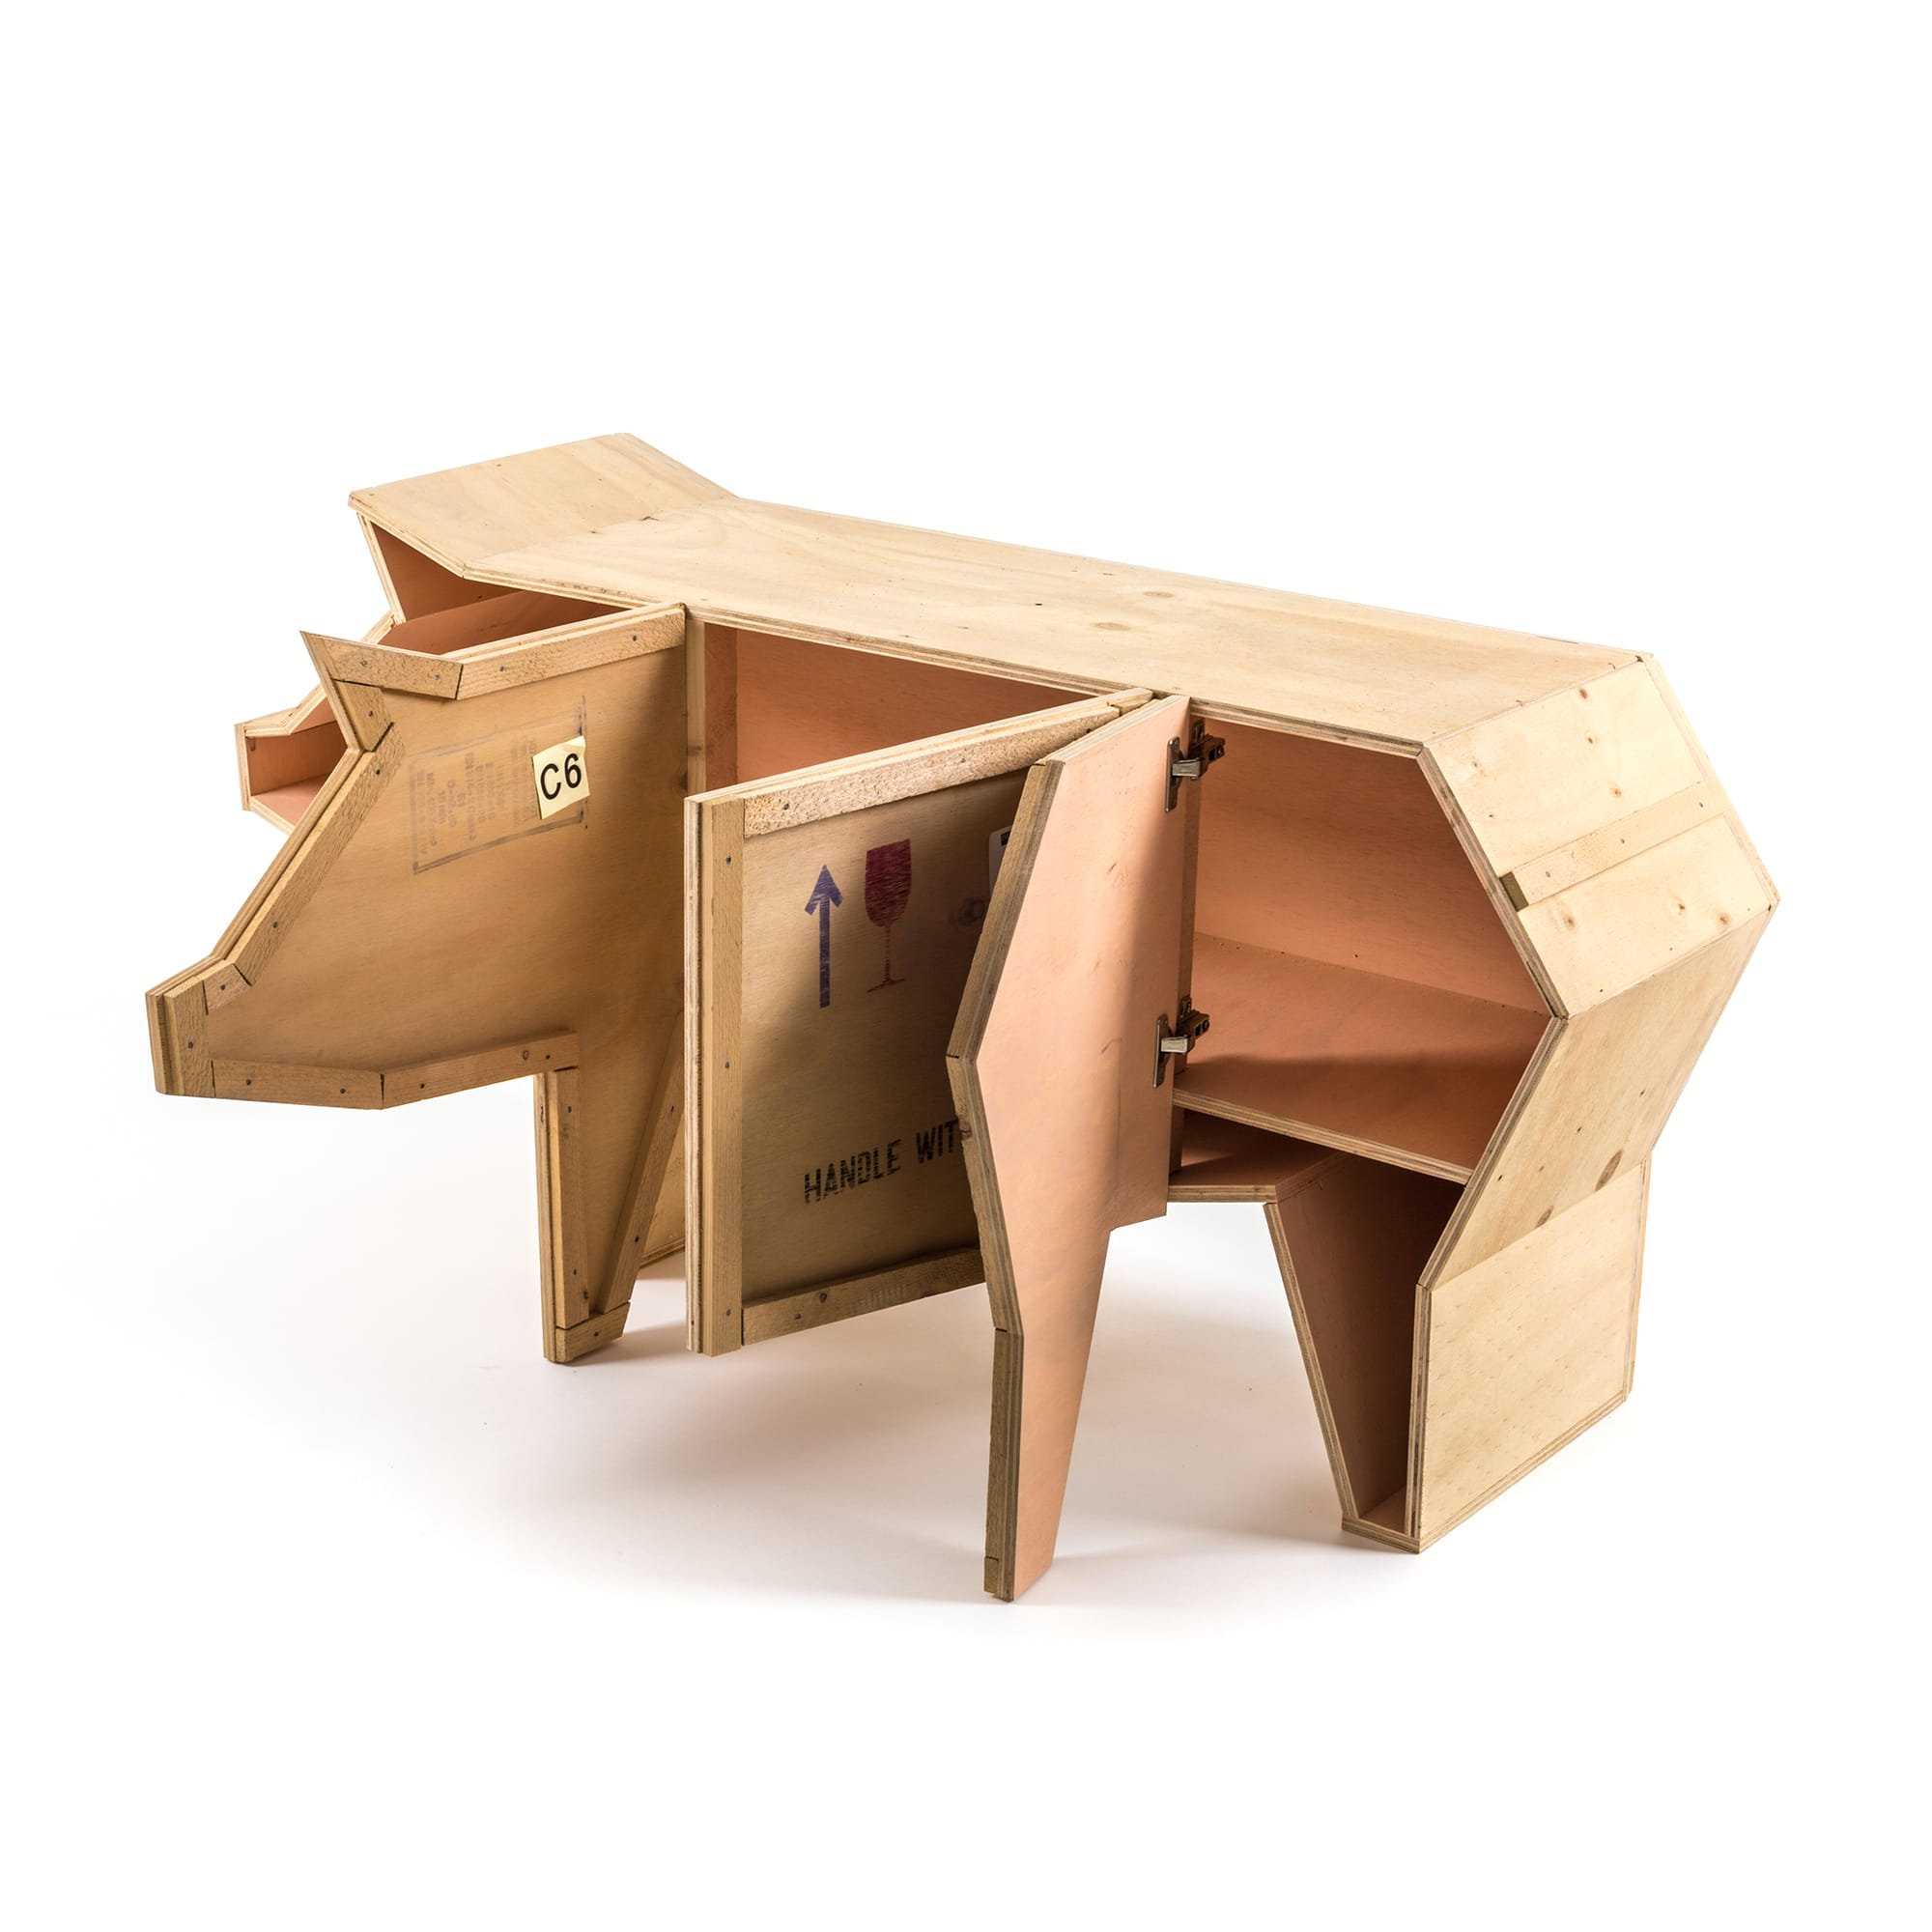 Seletti Wooden Furniture Sending Pig Open Racurs